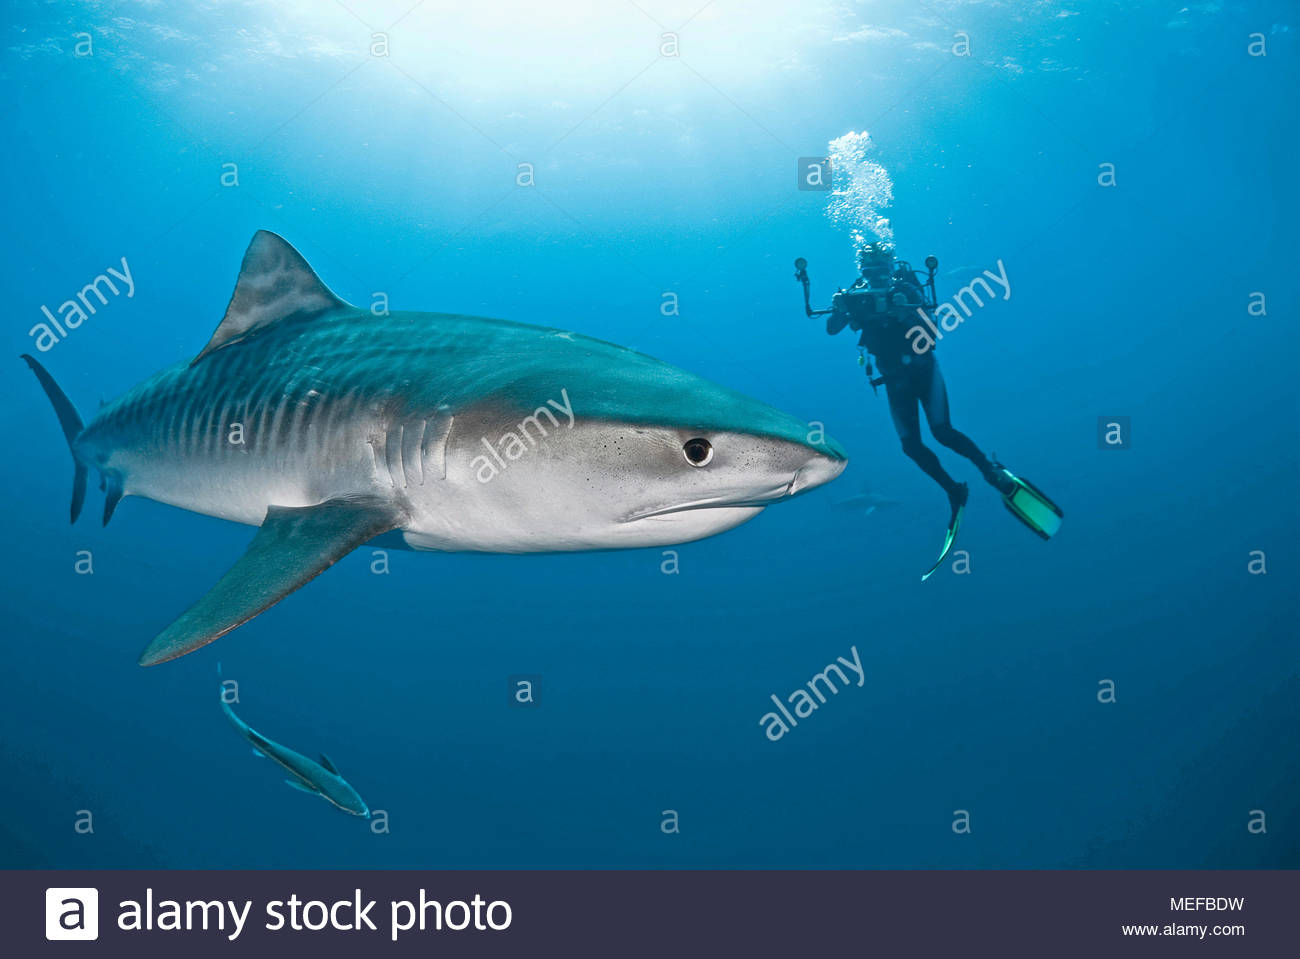 Scuba diver and Tiger shark (Galeocerdo cuvier) with live sharksucker or slender sharksucker (Echeneis naucrates), Bahama Banks, Bahamas - Stock Image